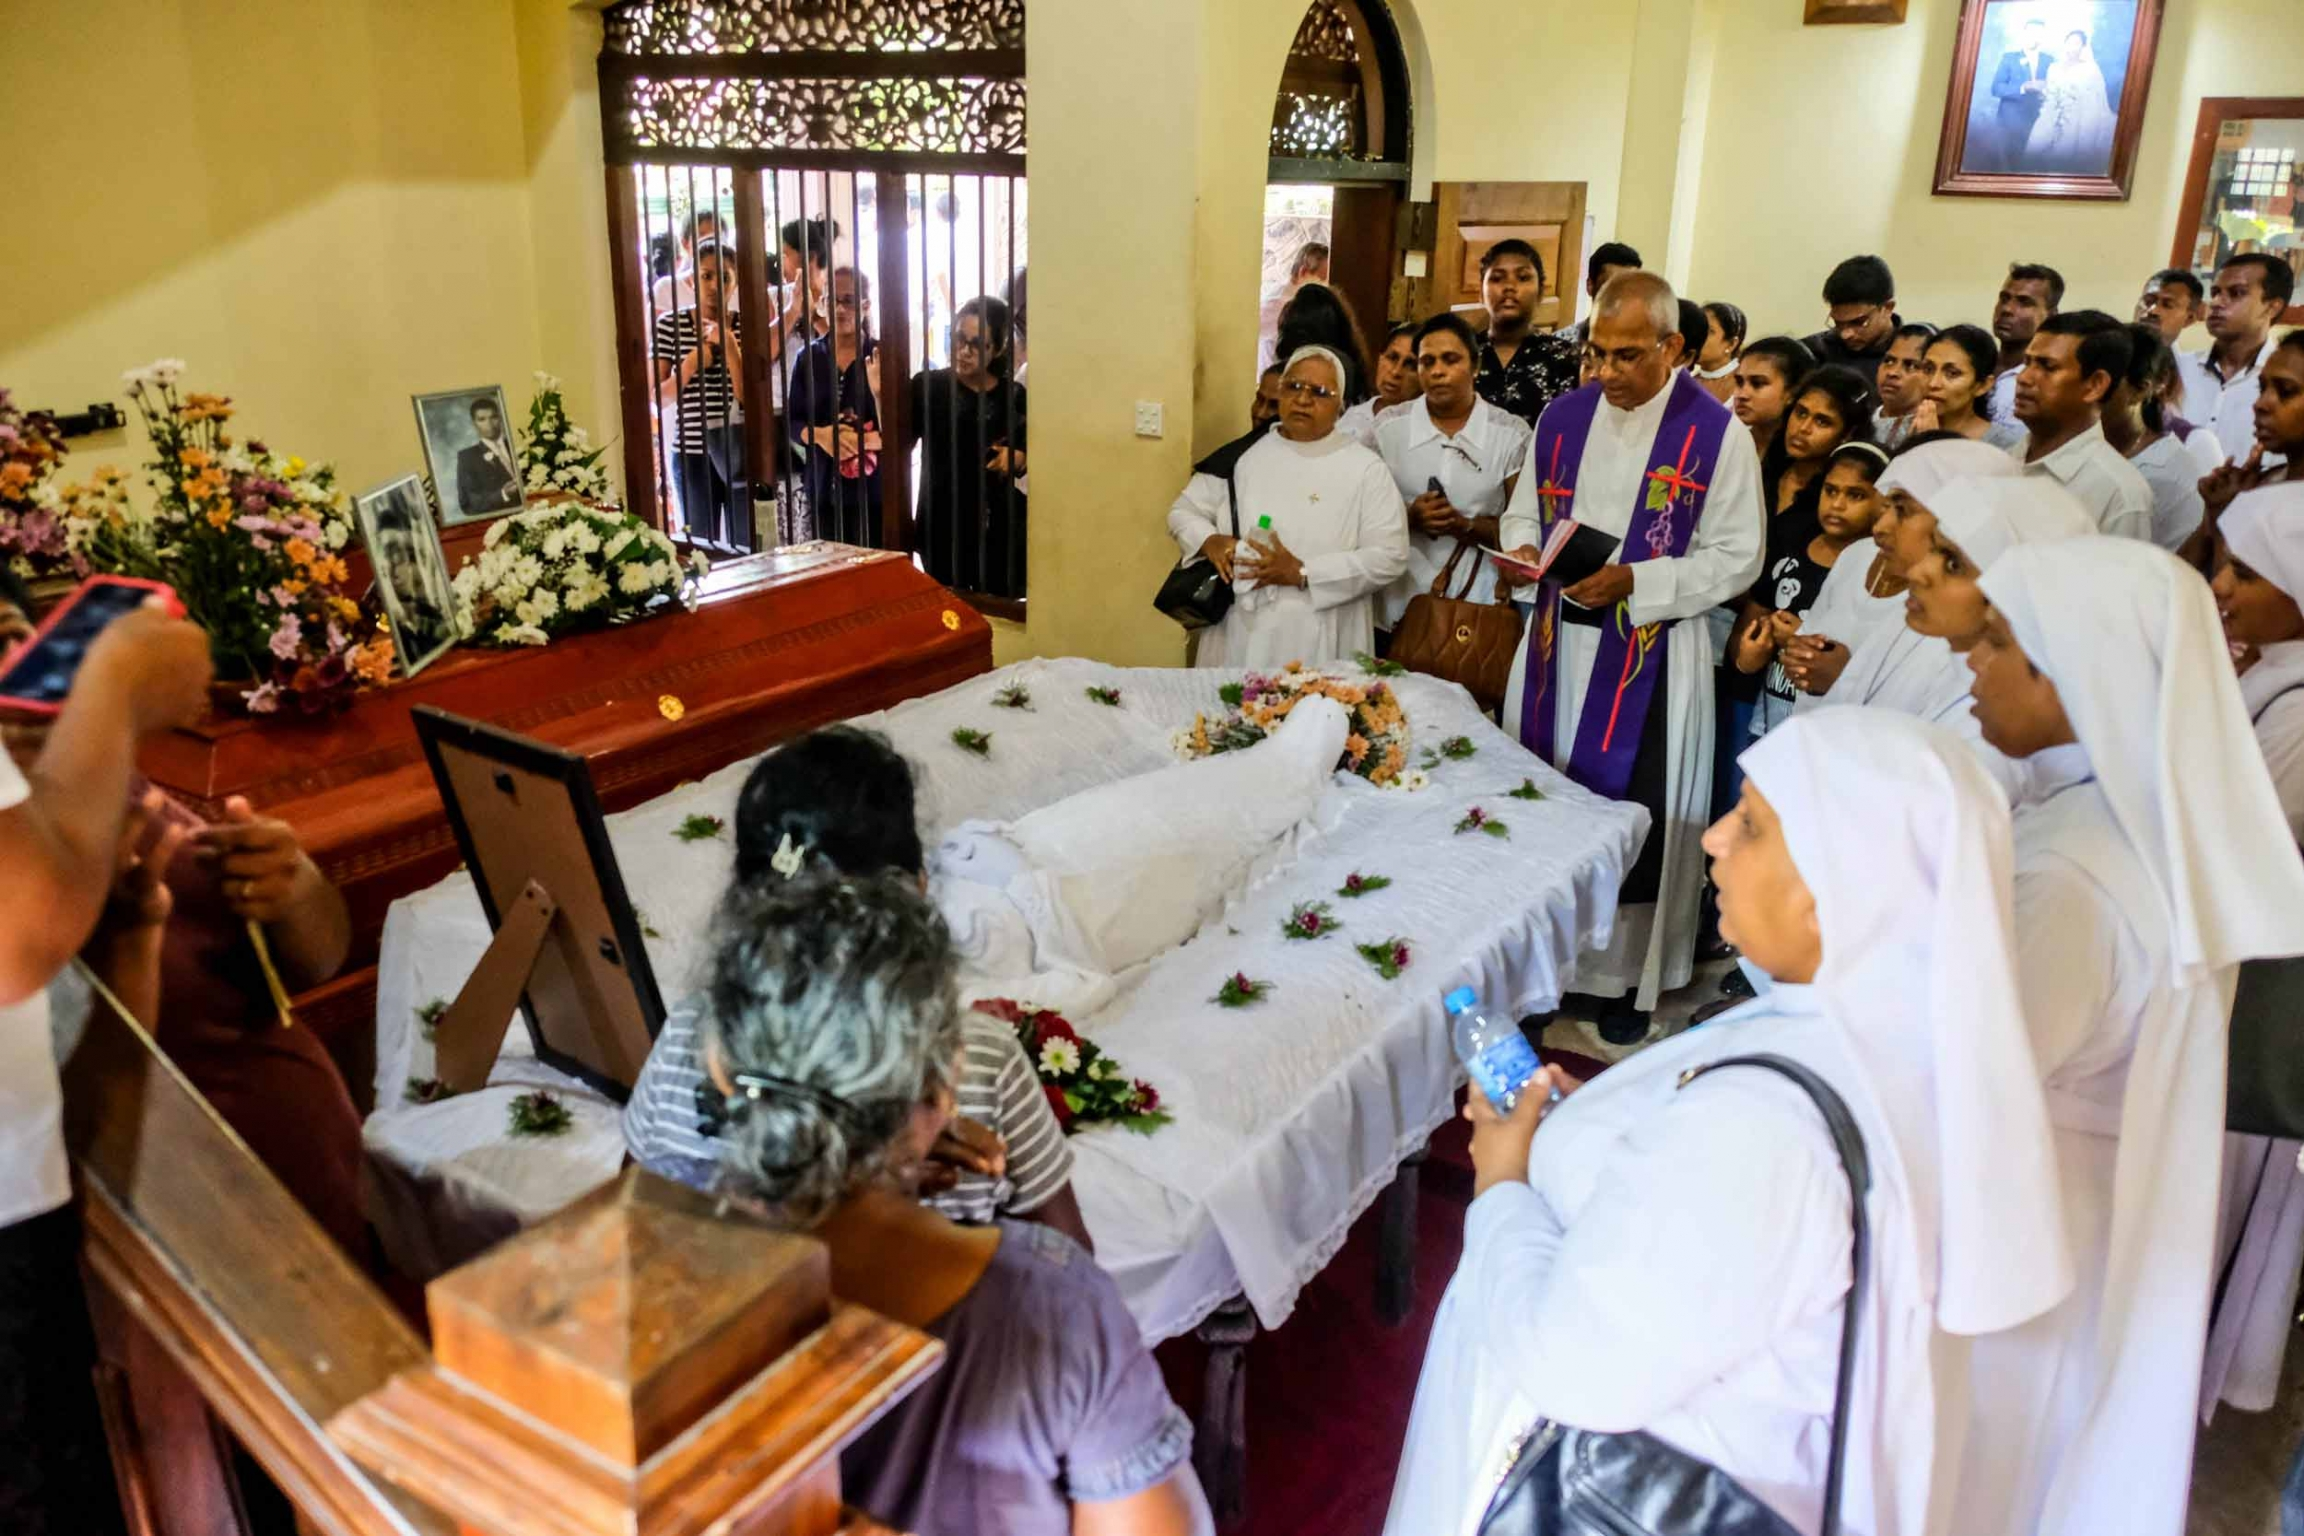 Family and friends gather around a casket in a small home while a priest reads a service